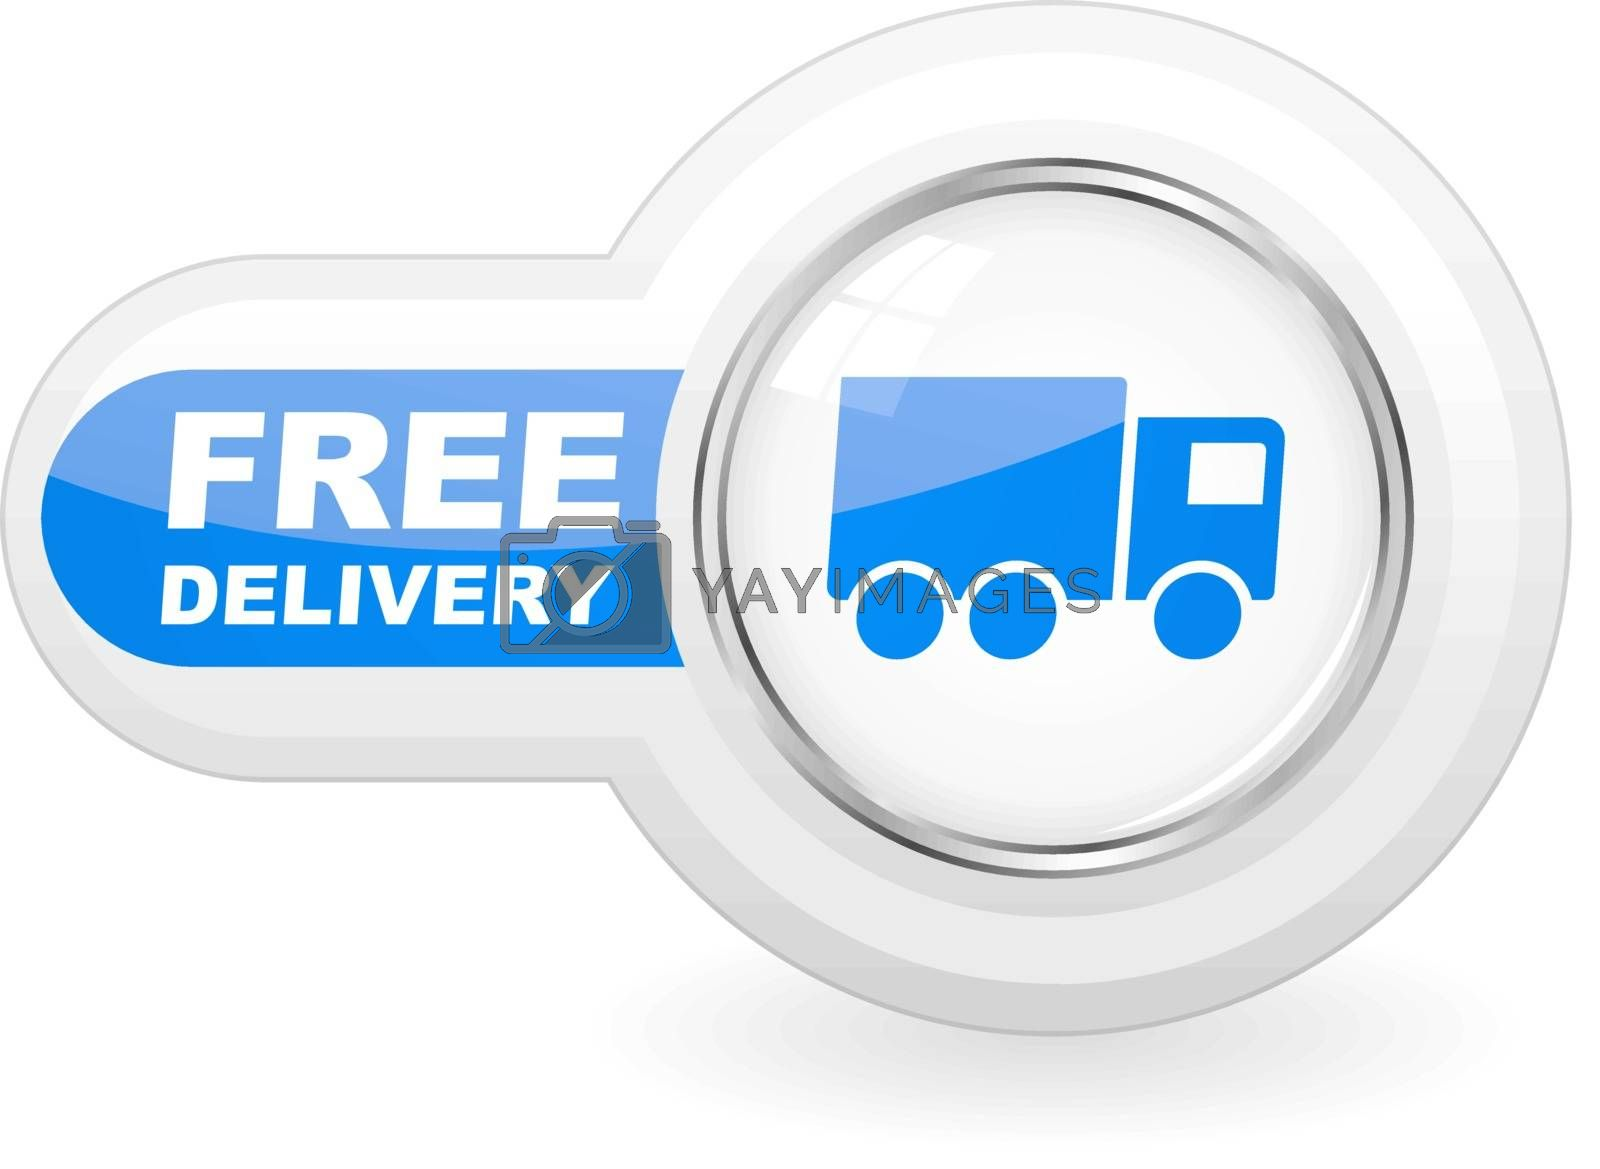 FREE DELIVERY. Usable for different business design.